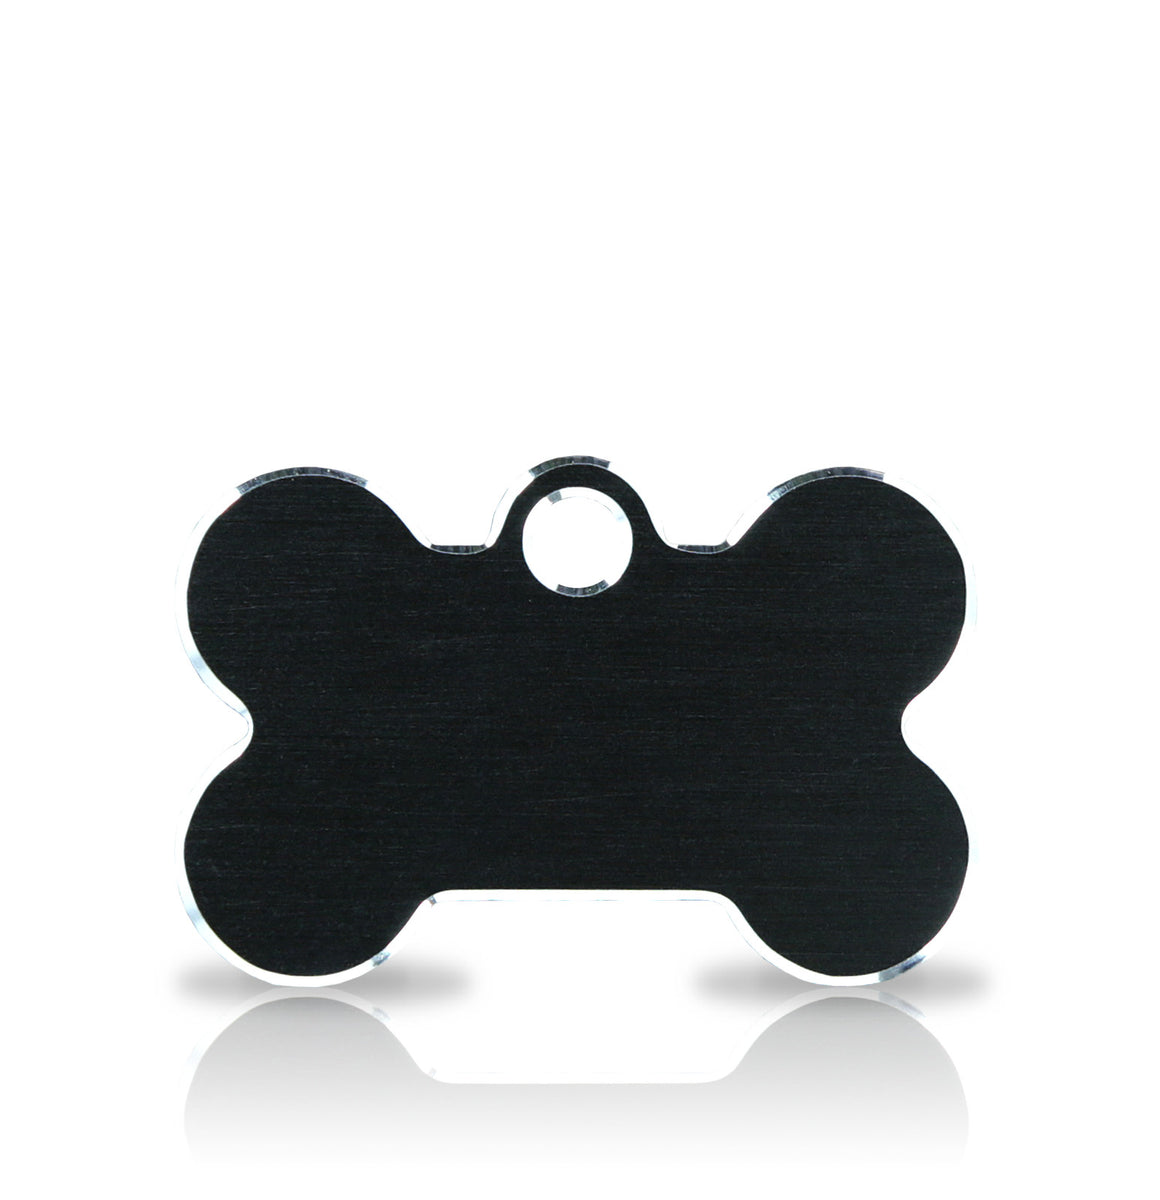 TaggIT Hi-Line Small Bone Black Aluminium iMarc Pet ID Tag